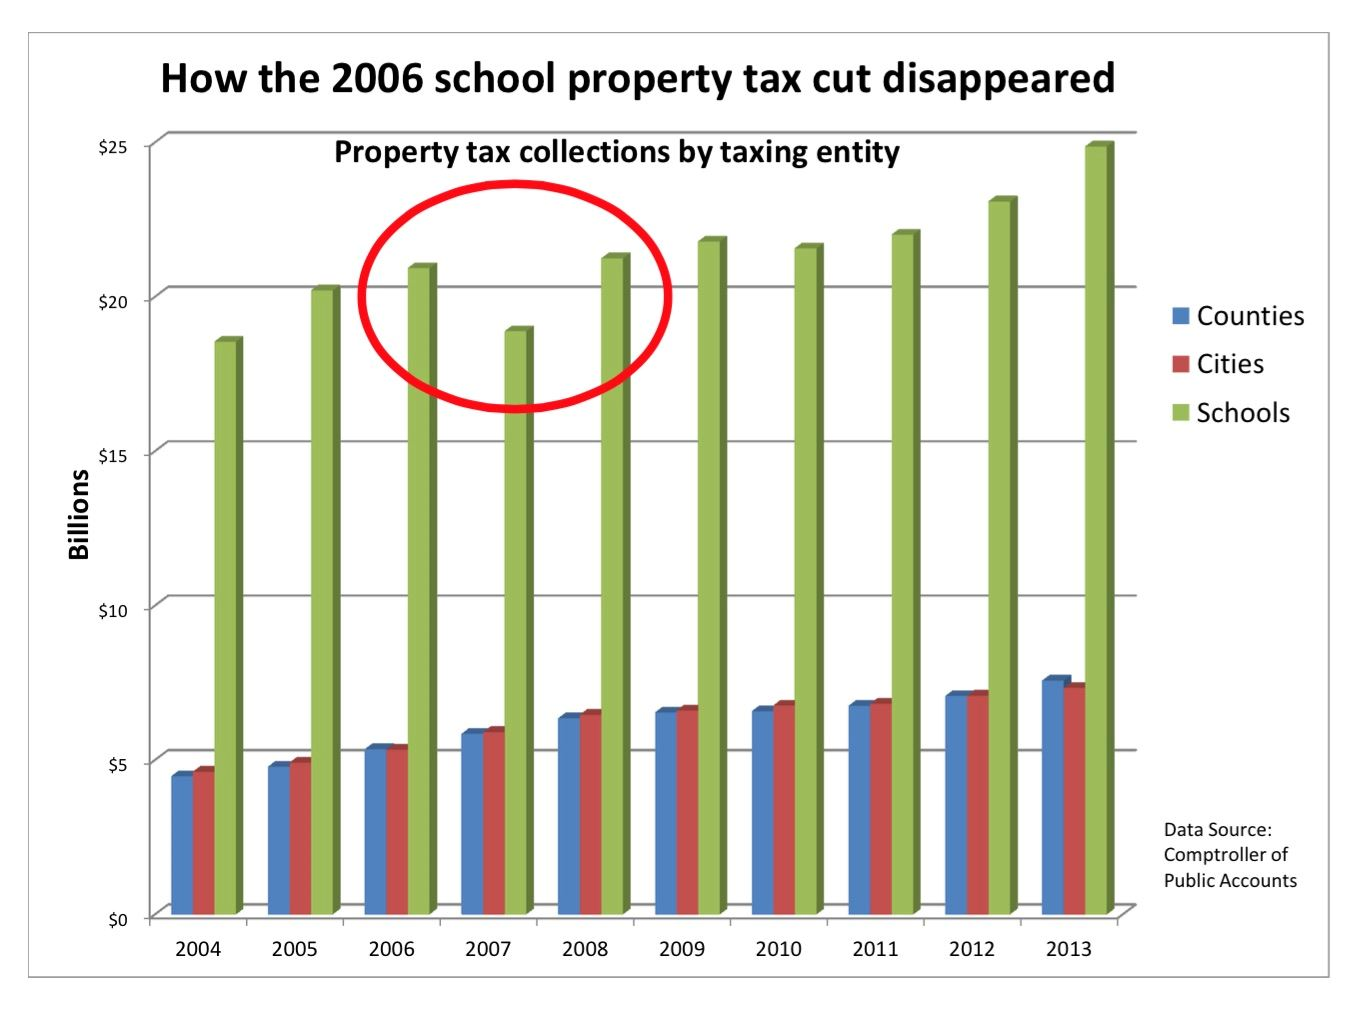 How the 2006 school property tax cut disappeared chart